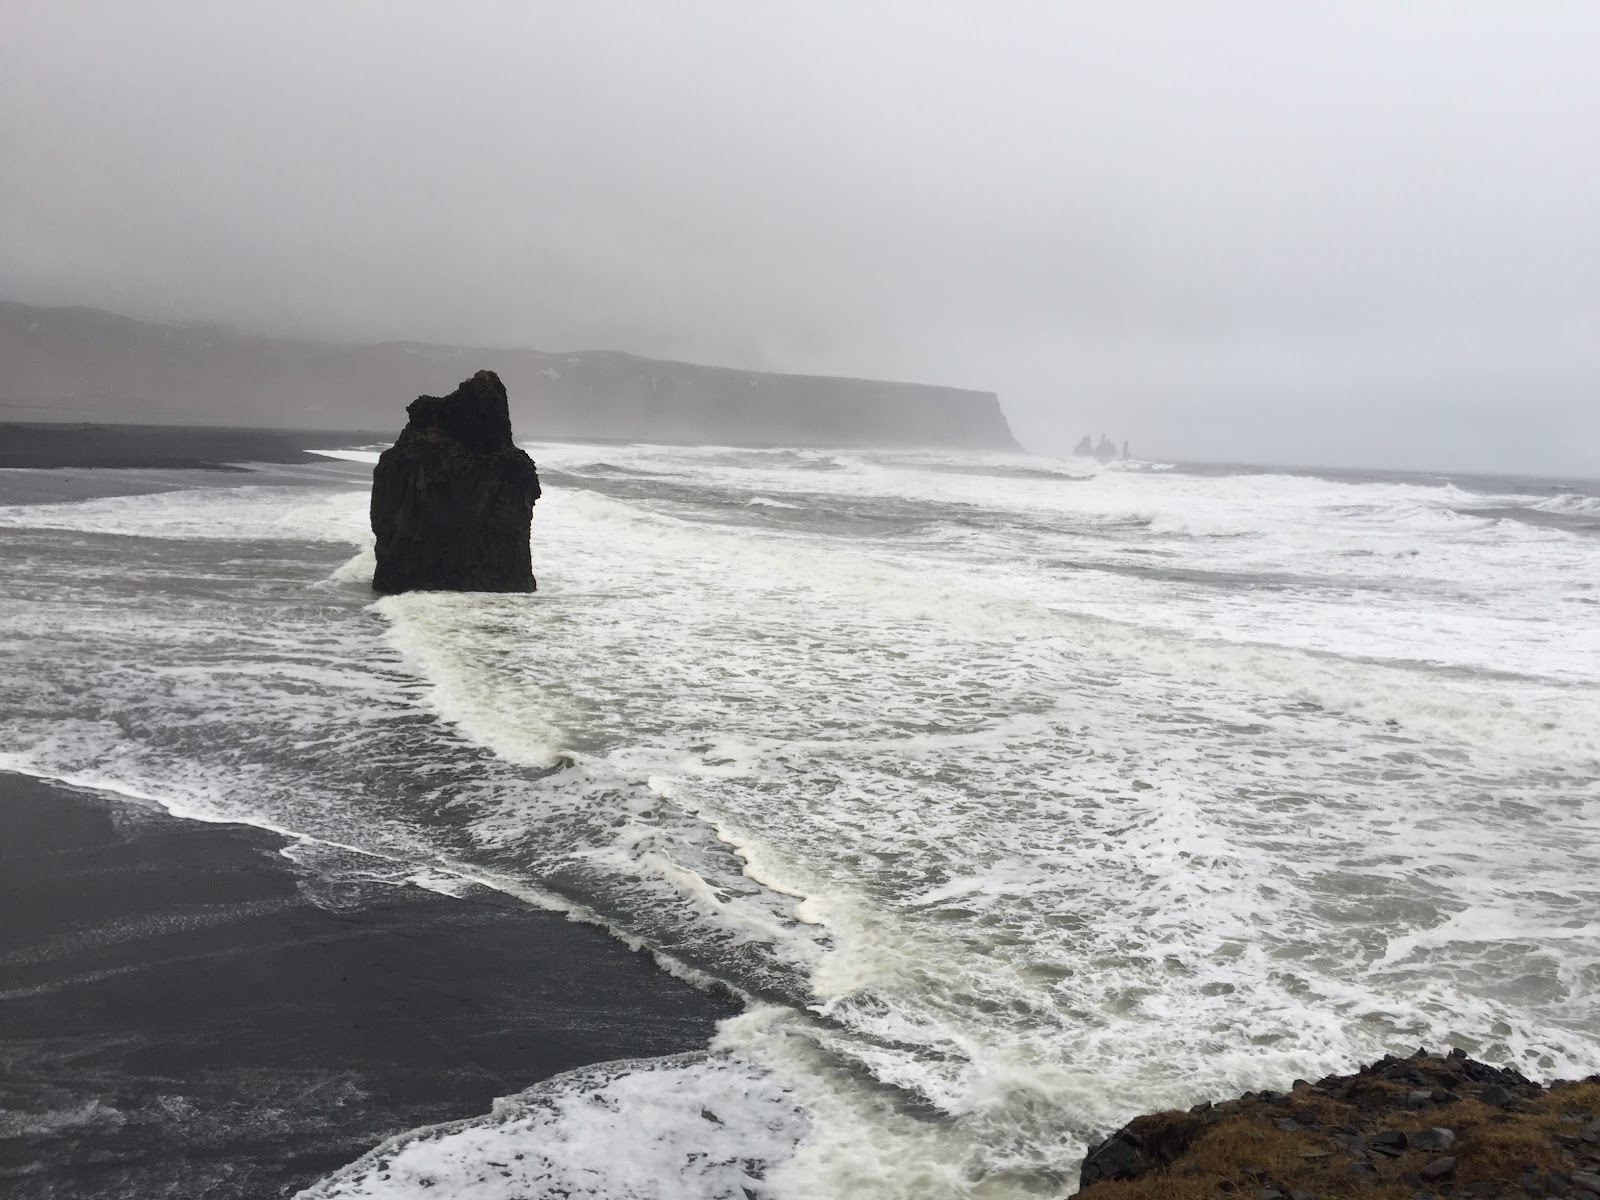 Iceland's Reynisfjara Black Sand Beach, a popular filming location for many productions, such as Game of Thrones and Star Wars. In 1991, National Geographic included it on its list of Top 10 non-tropical beaches to visit. It's not hard to see why. (Photo: Lilly Torosyan)